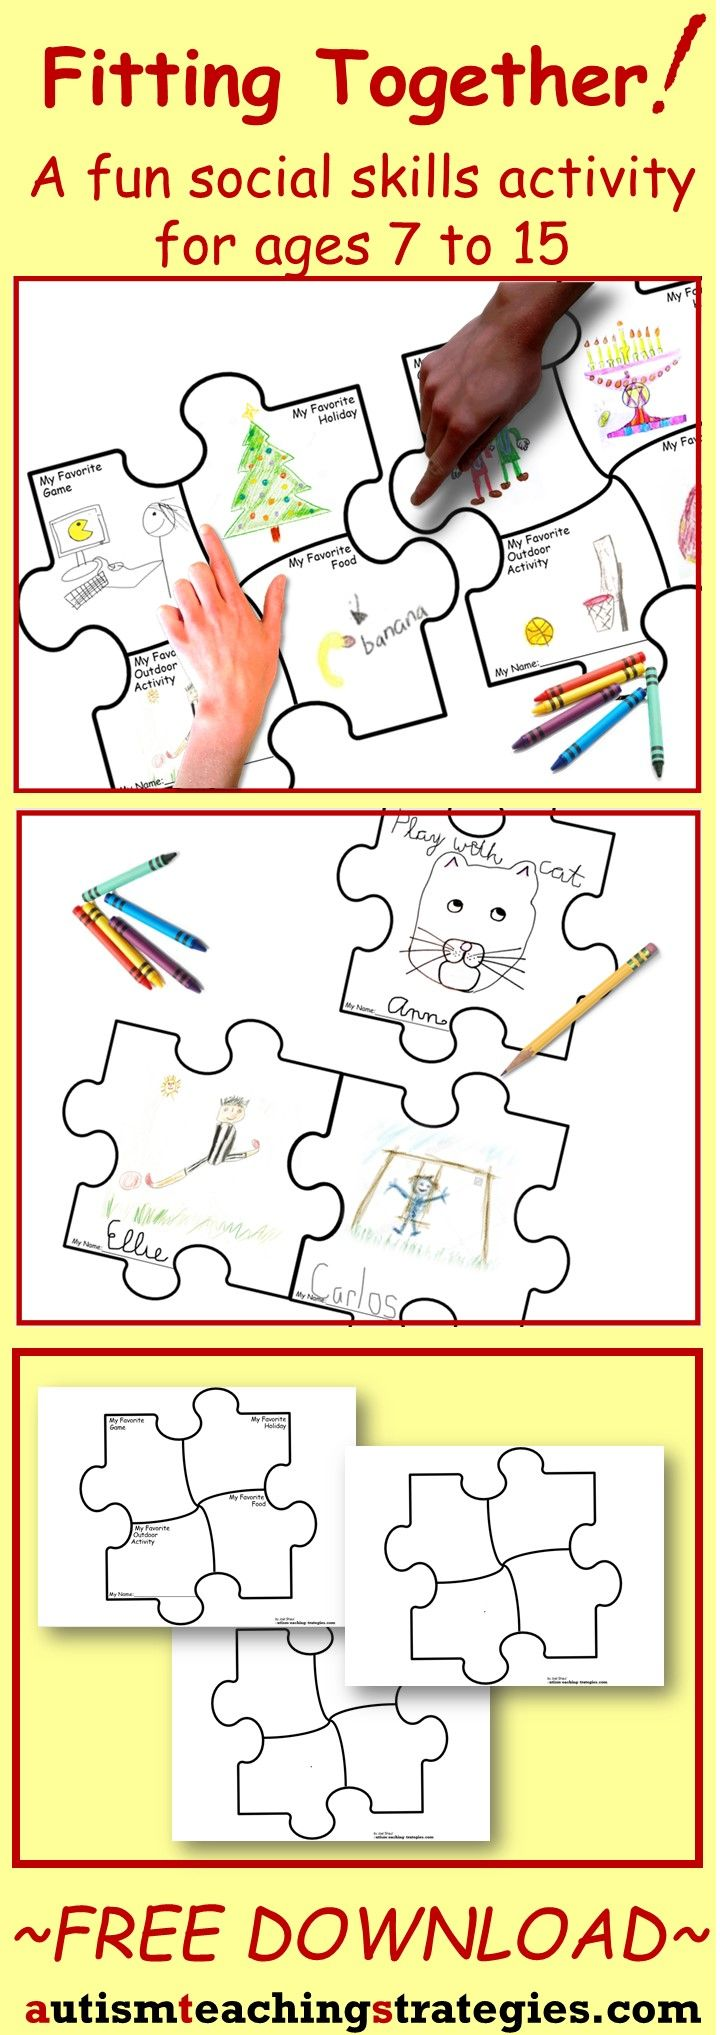 Free puzzle drawing sheets and directions provided for a fun social skills activity. For children with (and without) autism. Tags: autism, social skills, art therapy, free.